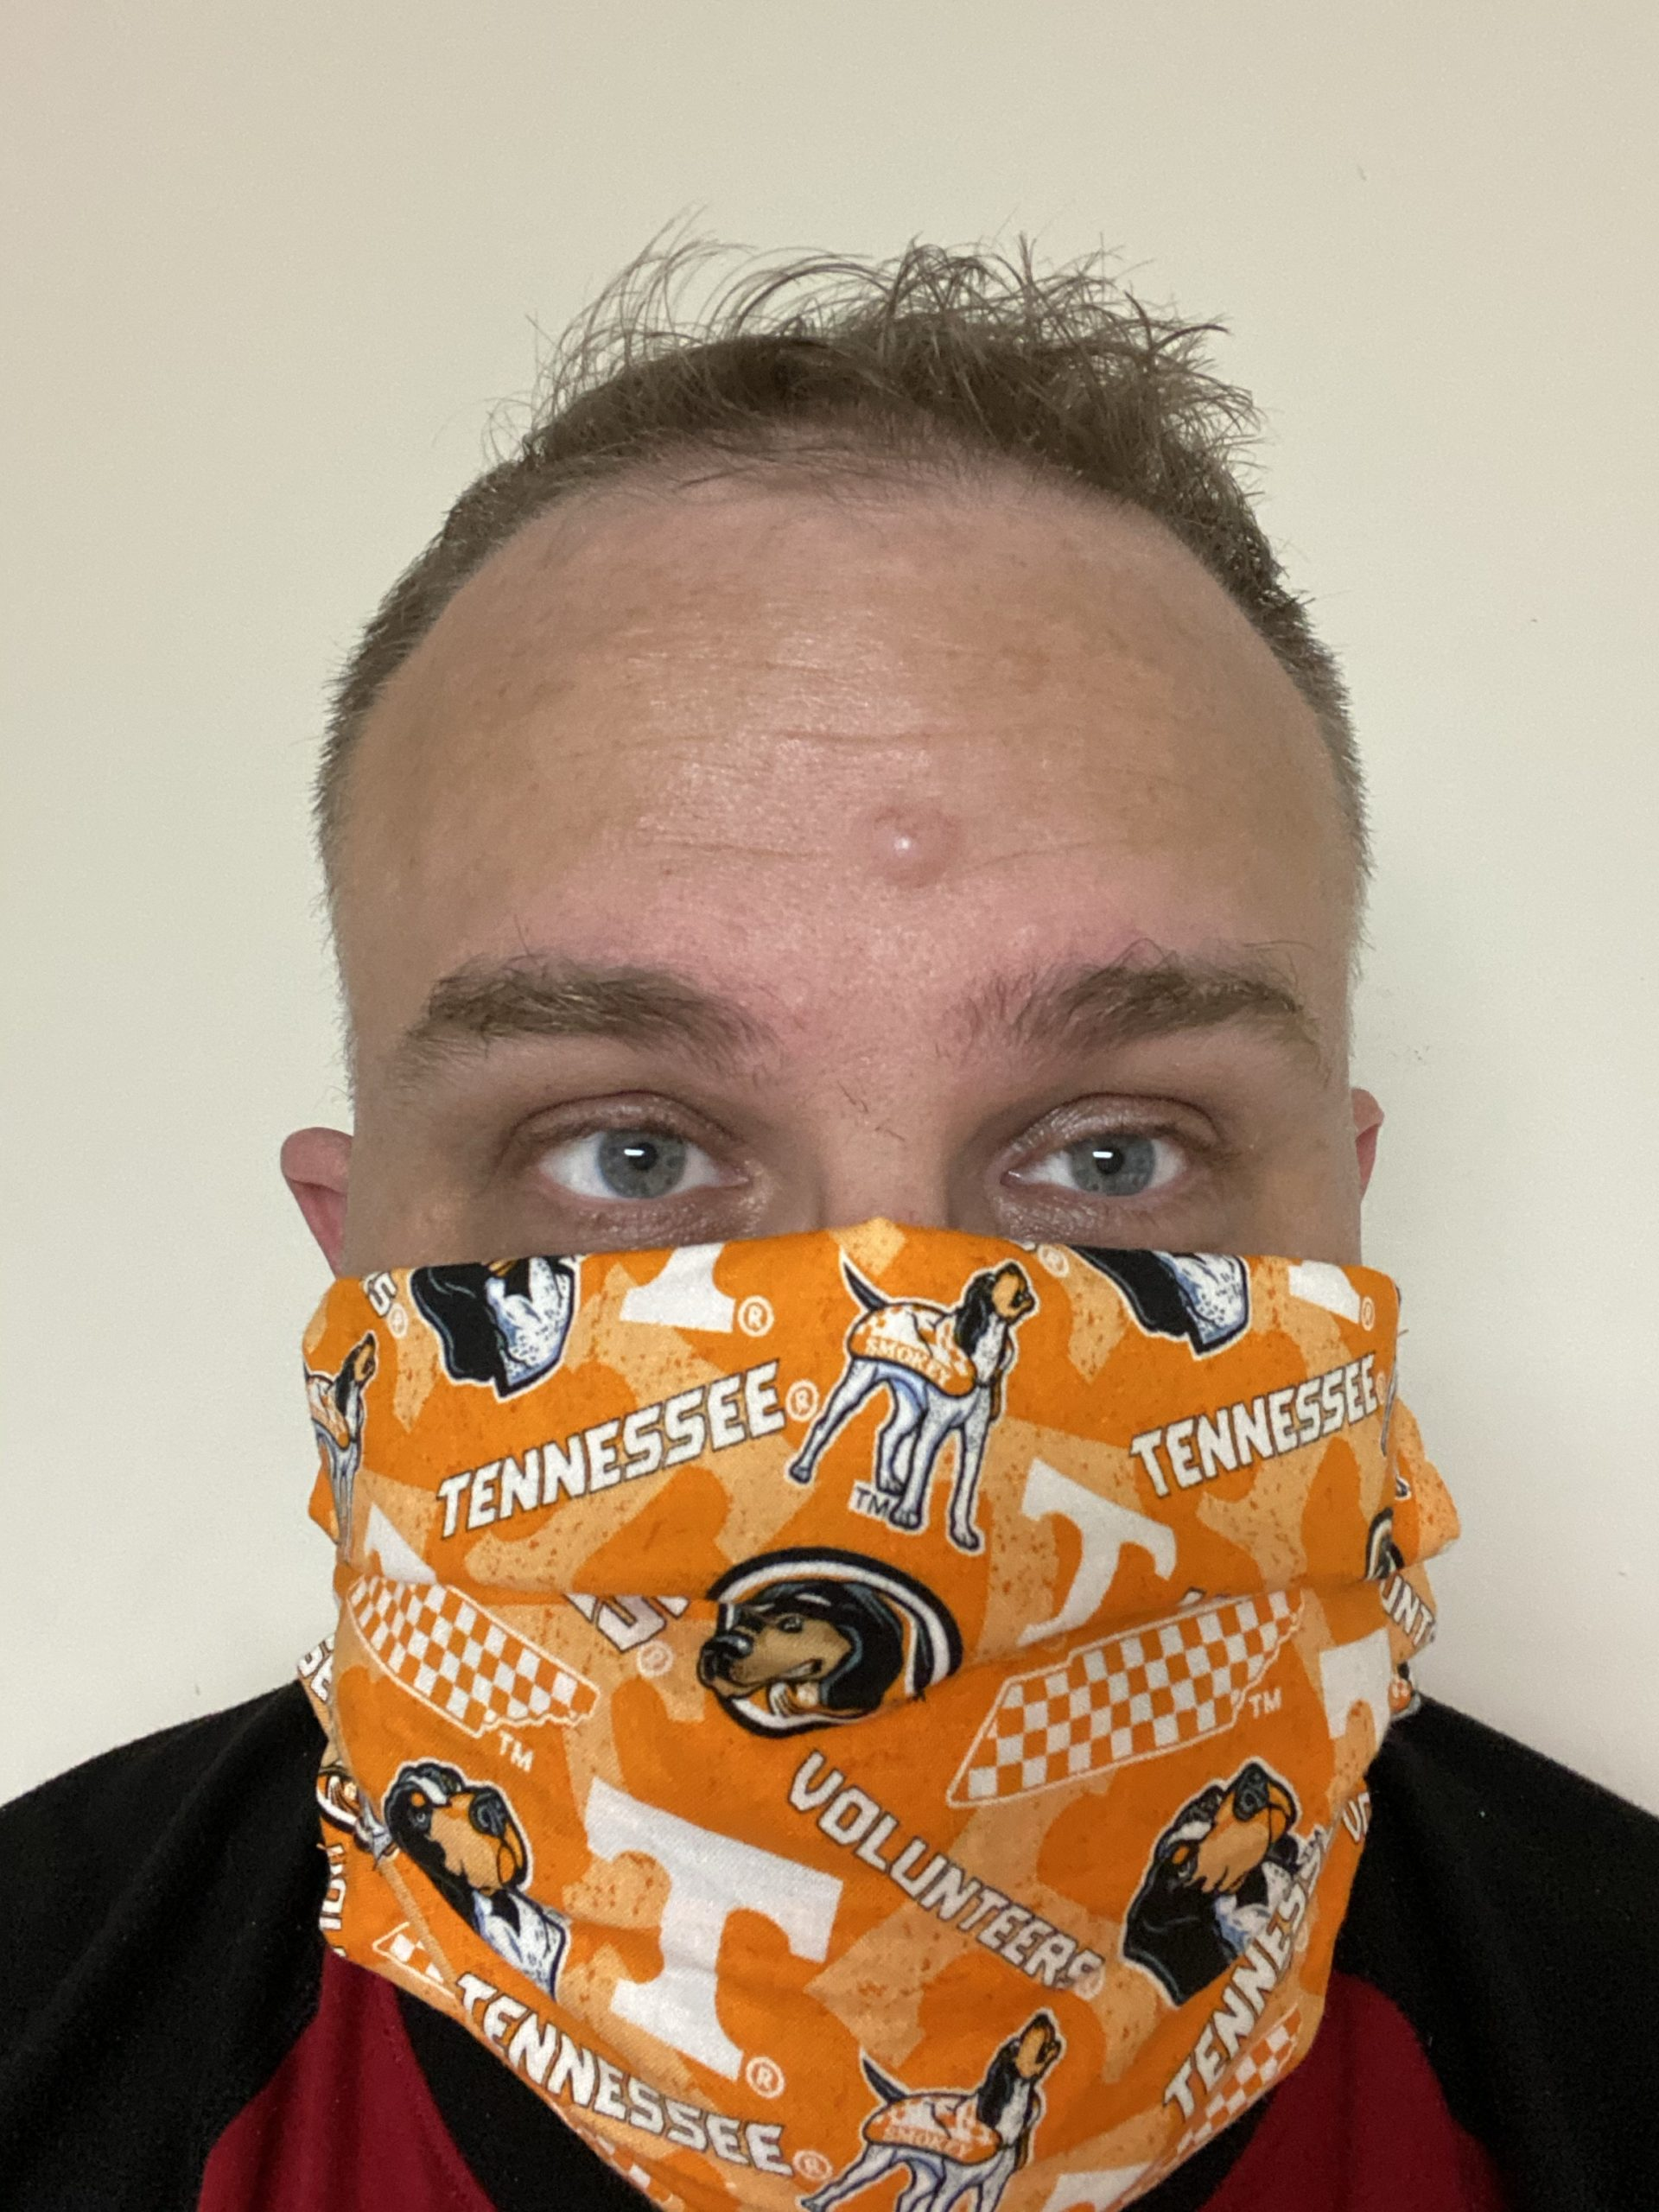 Tennessee Volunteers Face Mask #GoVols #Vols #FaceMask